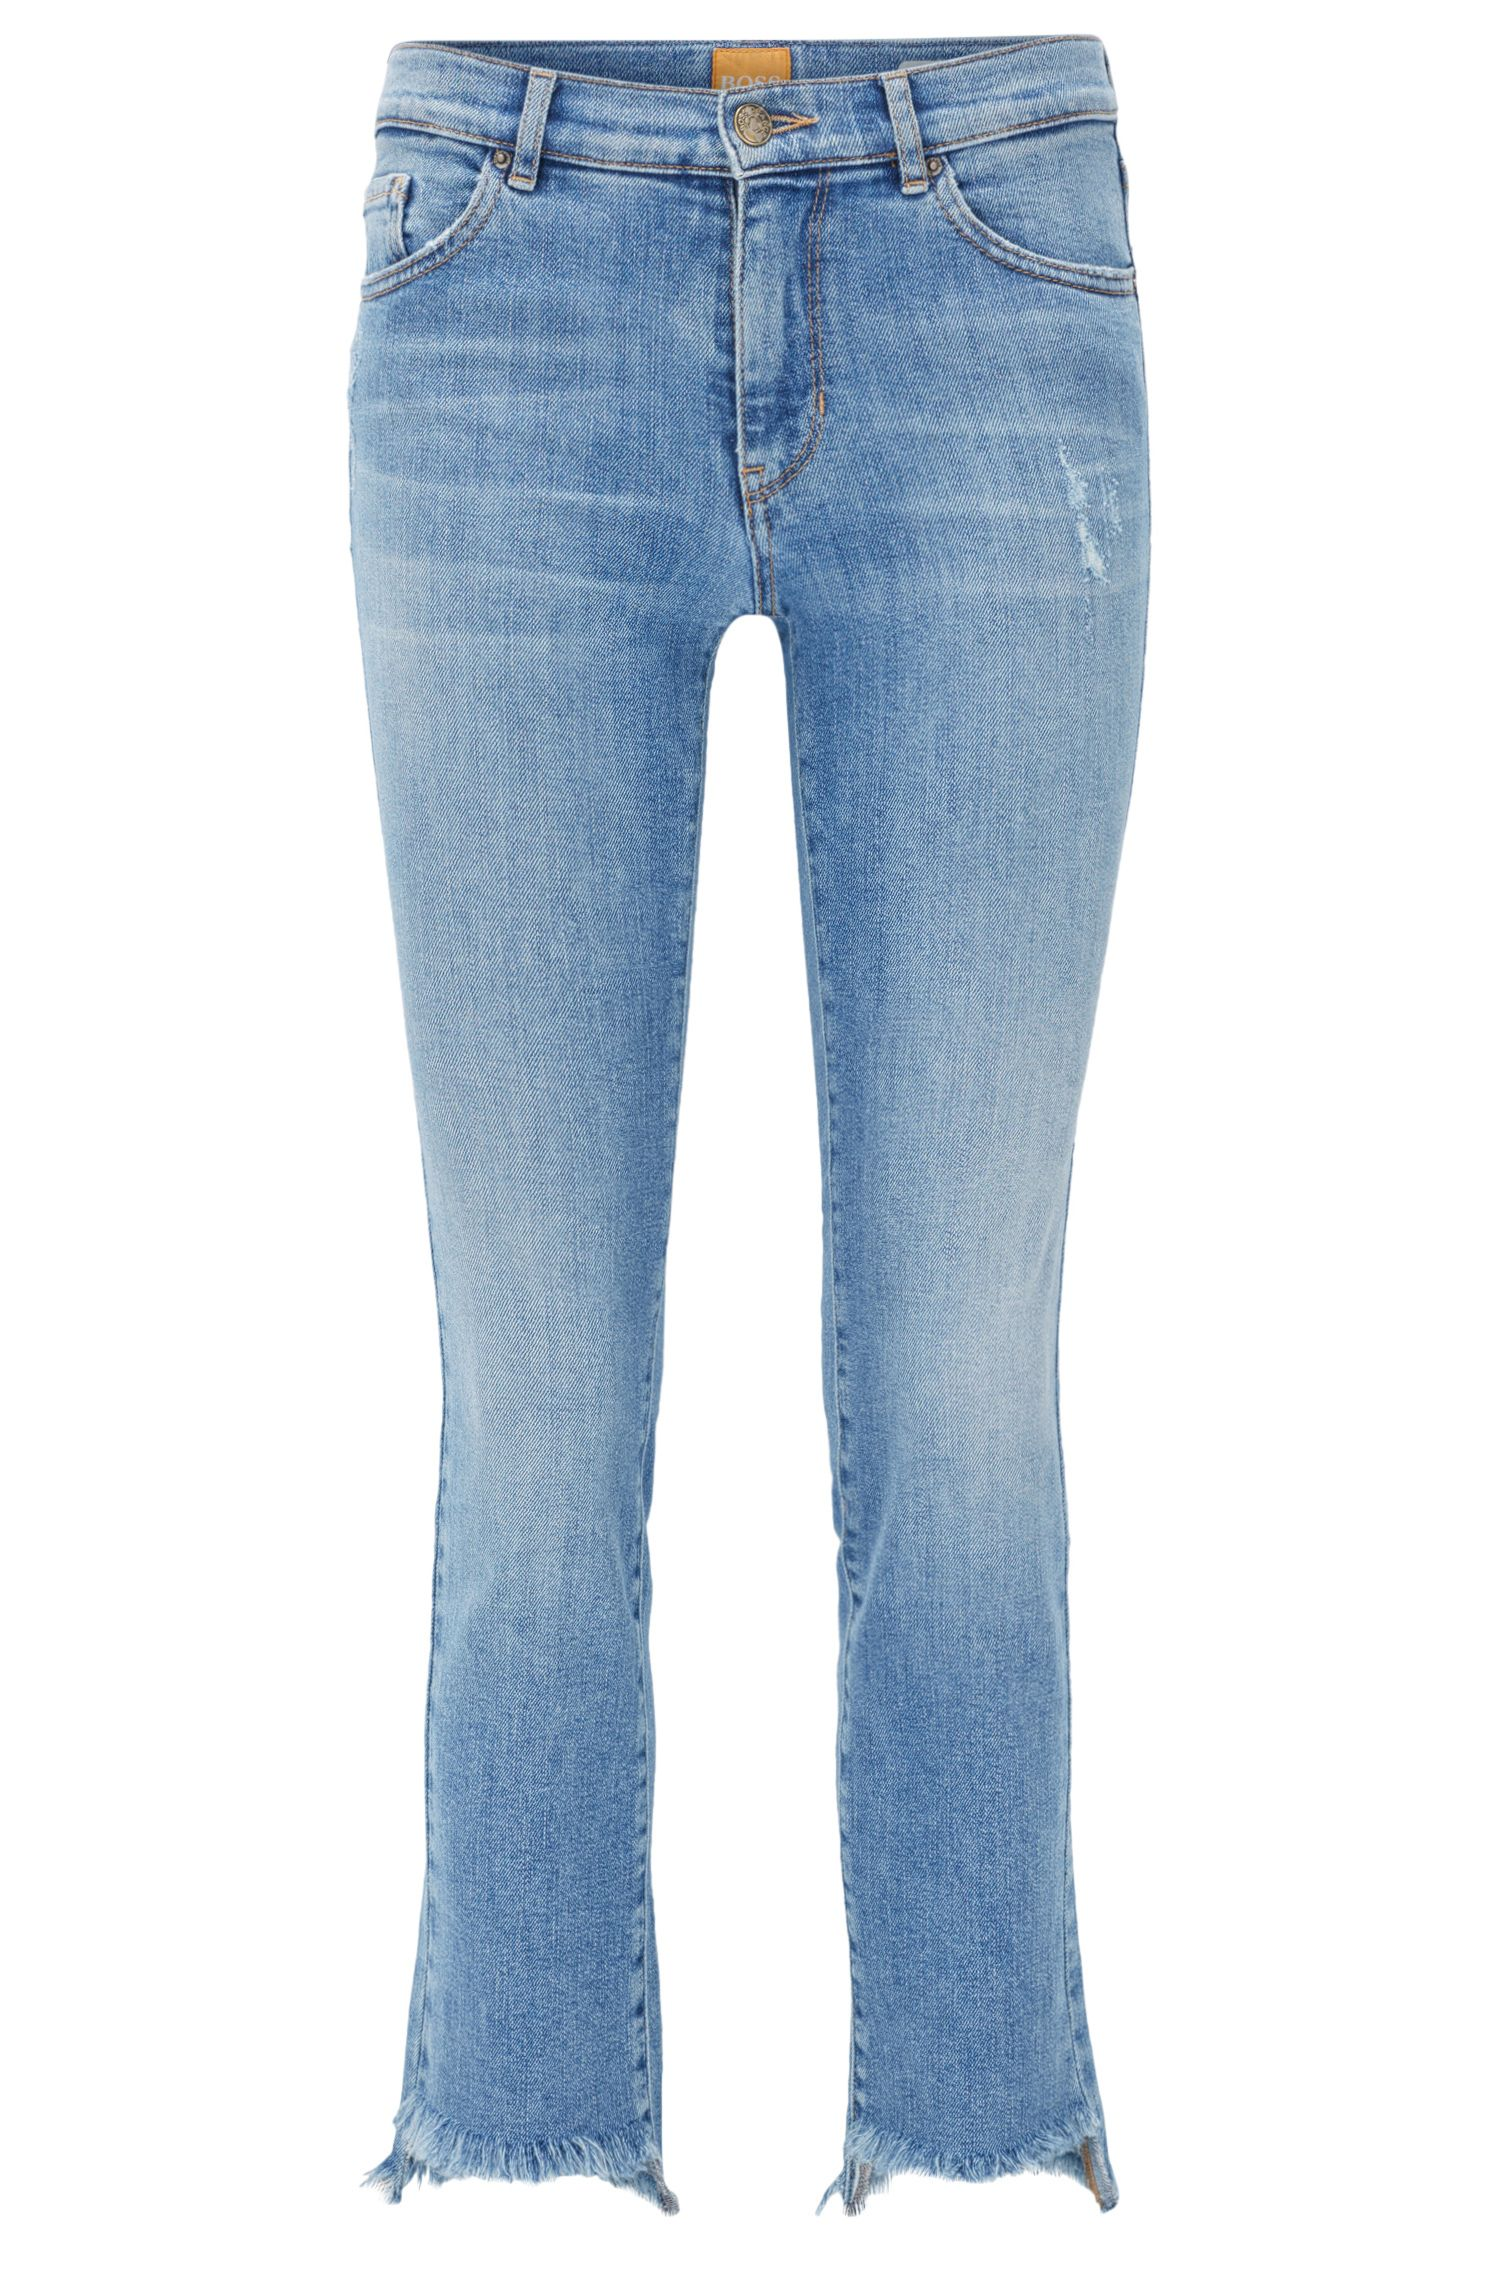 Slim-Fit Jeans in Cropped-Länge aus Stretch Denim mit offenem Saum